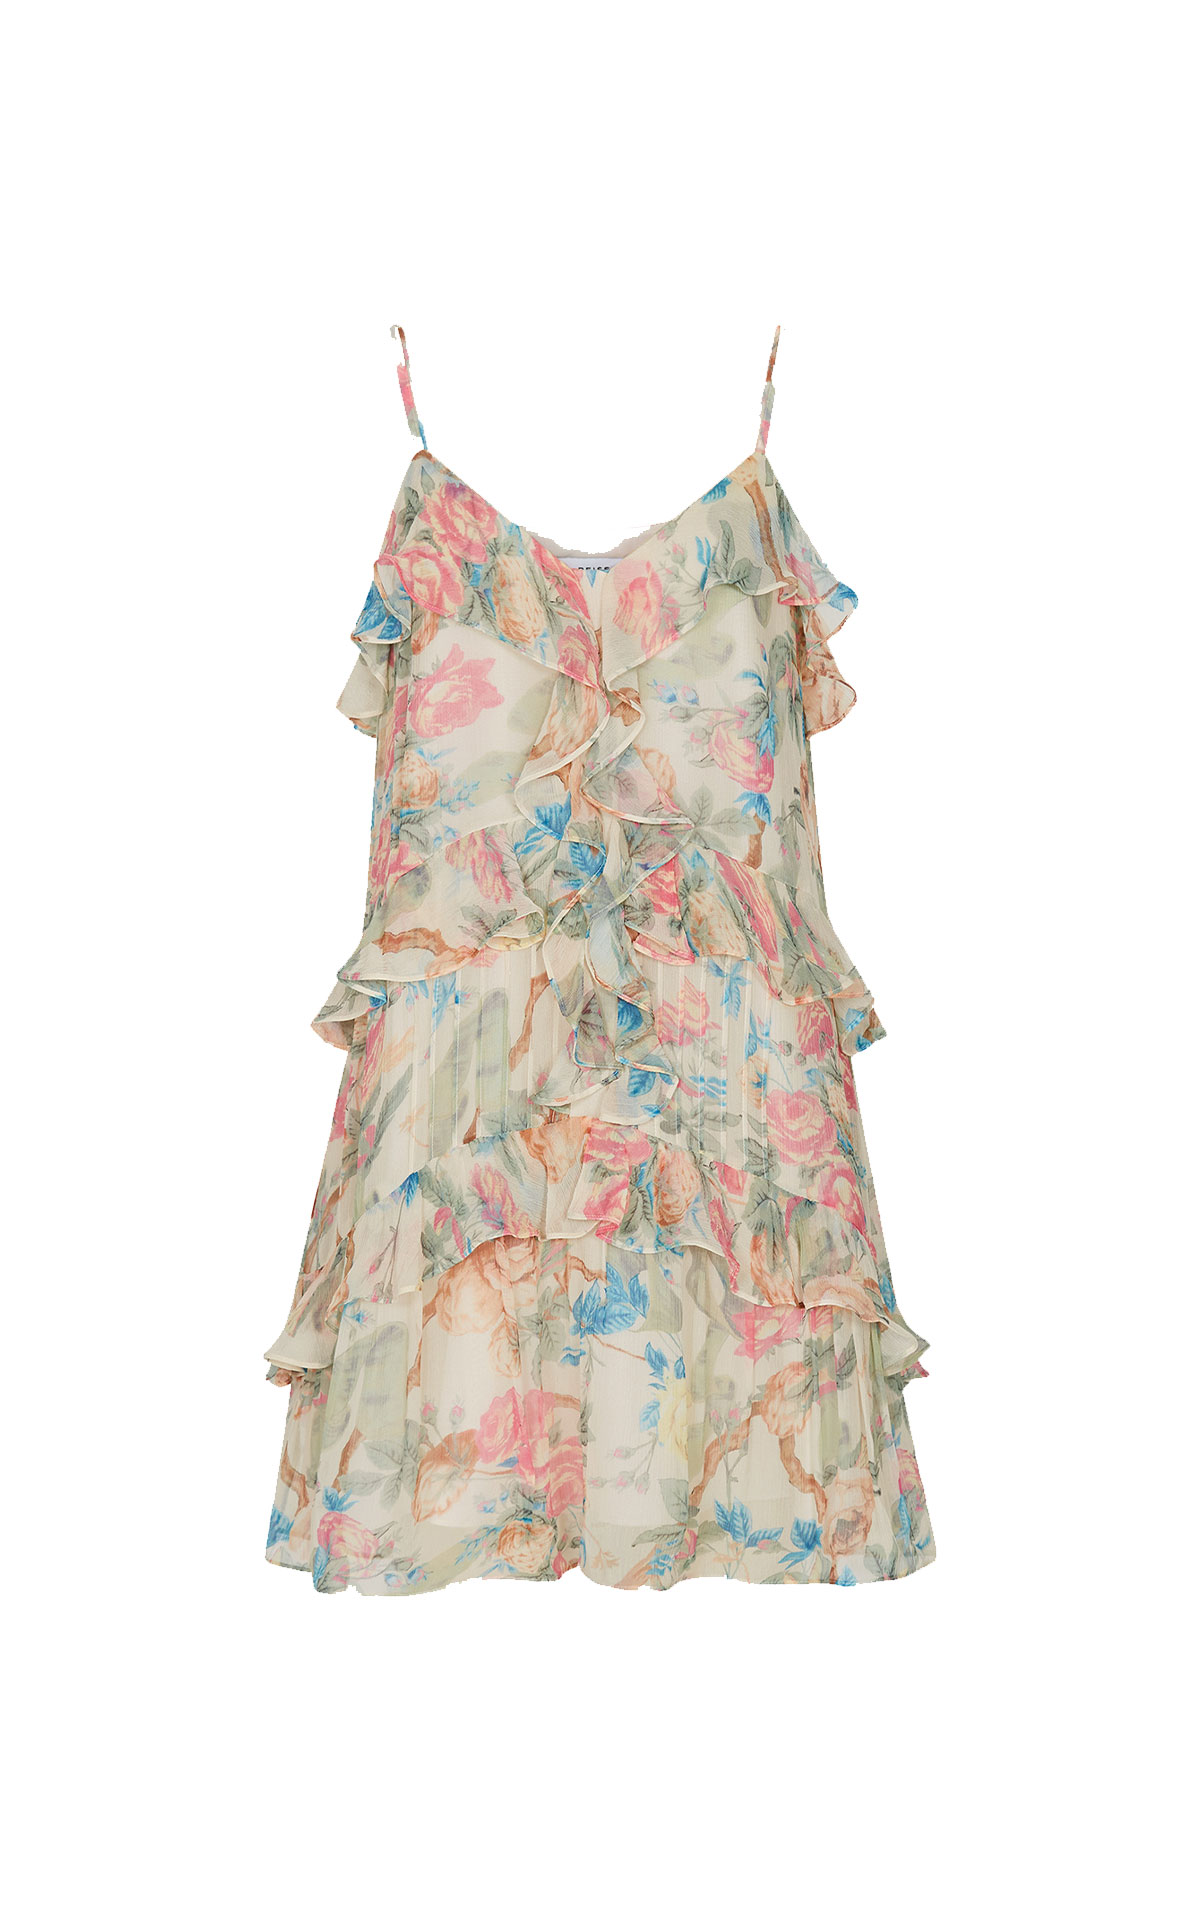 Reiss Lana pink dress from Bicester Village